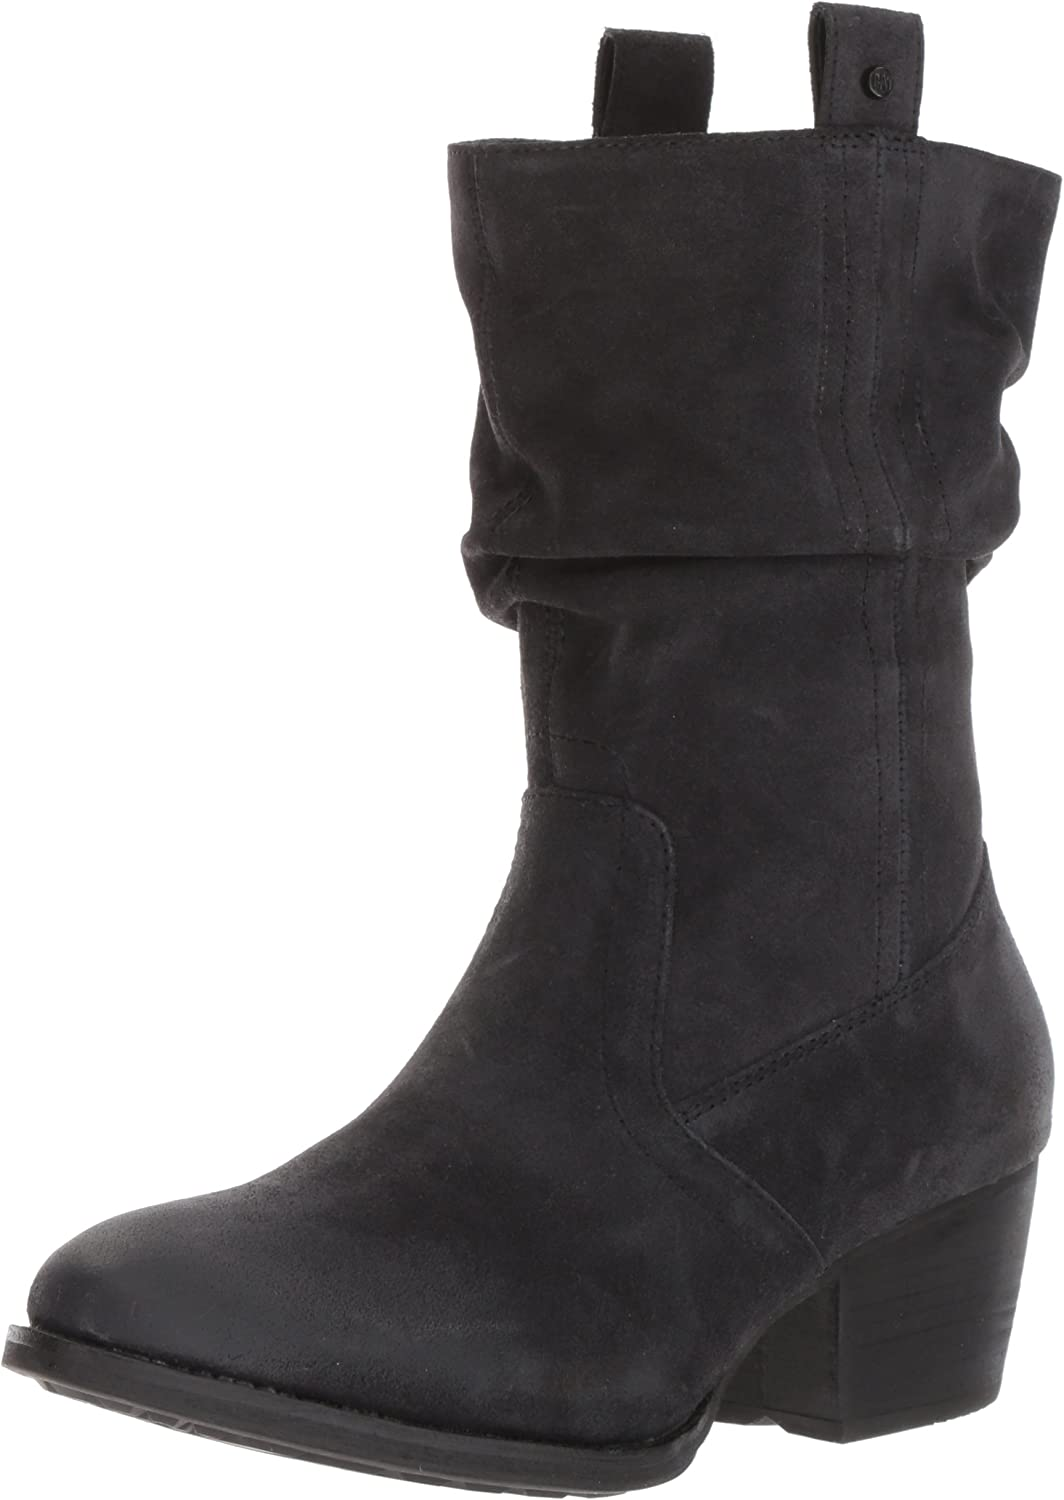 Caterpillar Unisex-Adult Incense mid Shaft Pull on Boot with Inside Zip Calf